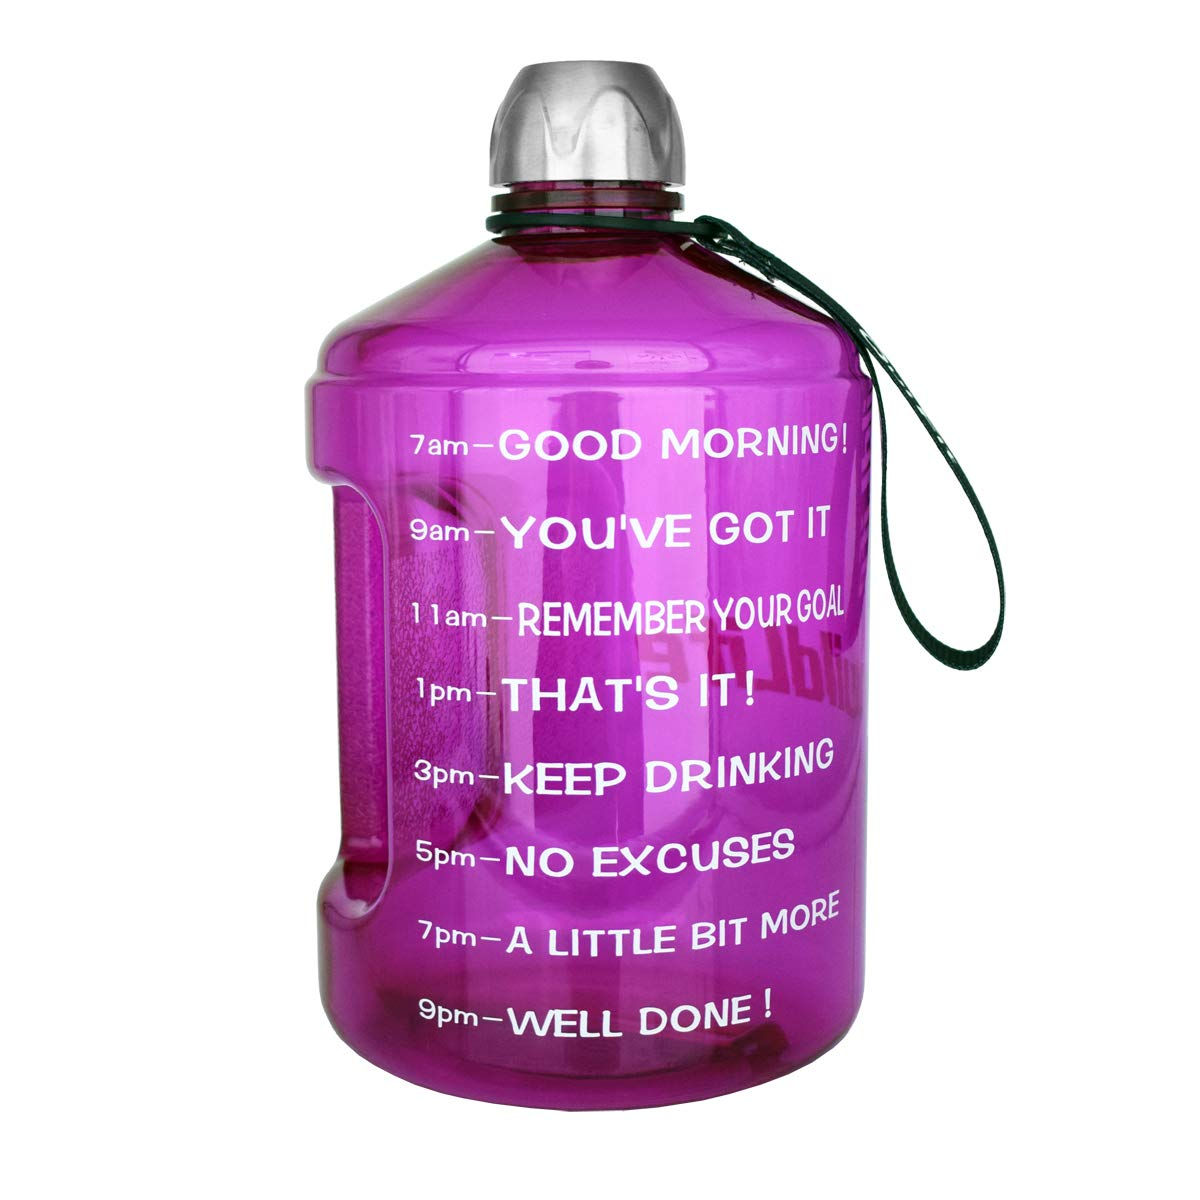 ETDW Gallon BPA Free Water Bottle with Time Marker and Straw 3.78//2.2 Litre Big Water Jug with Handle Leakproof Daily Water Intake Bottle Pop Up Open